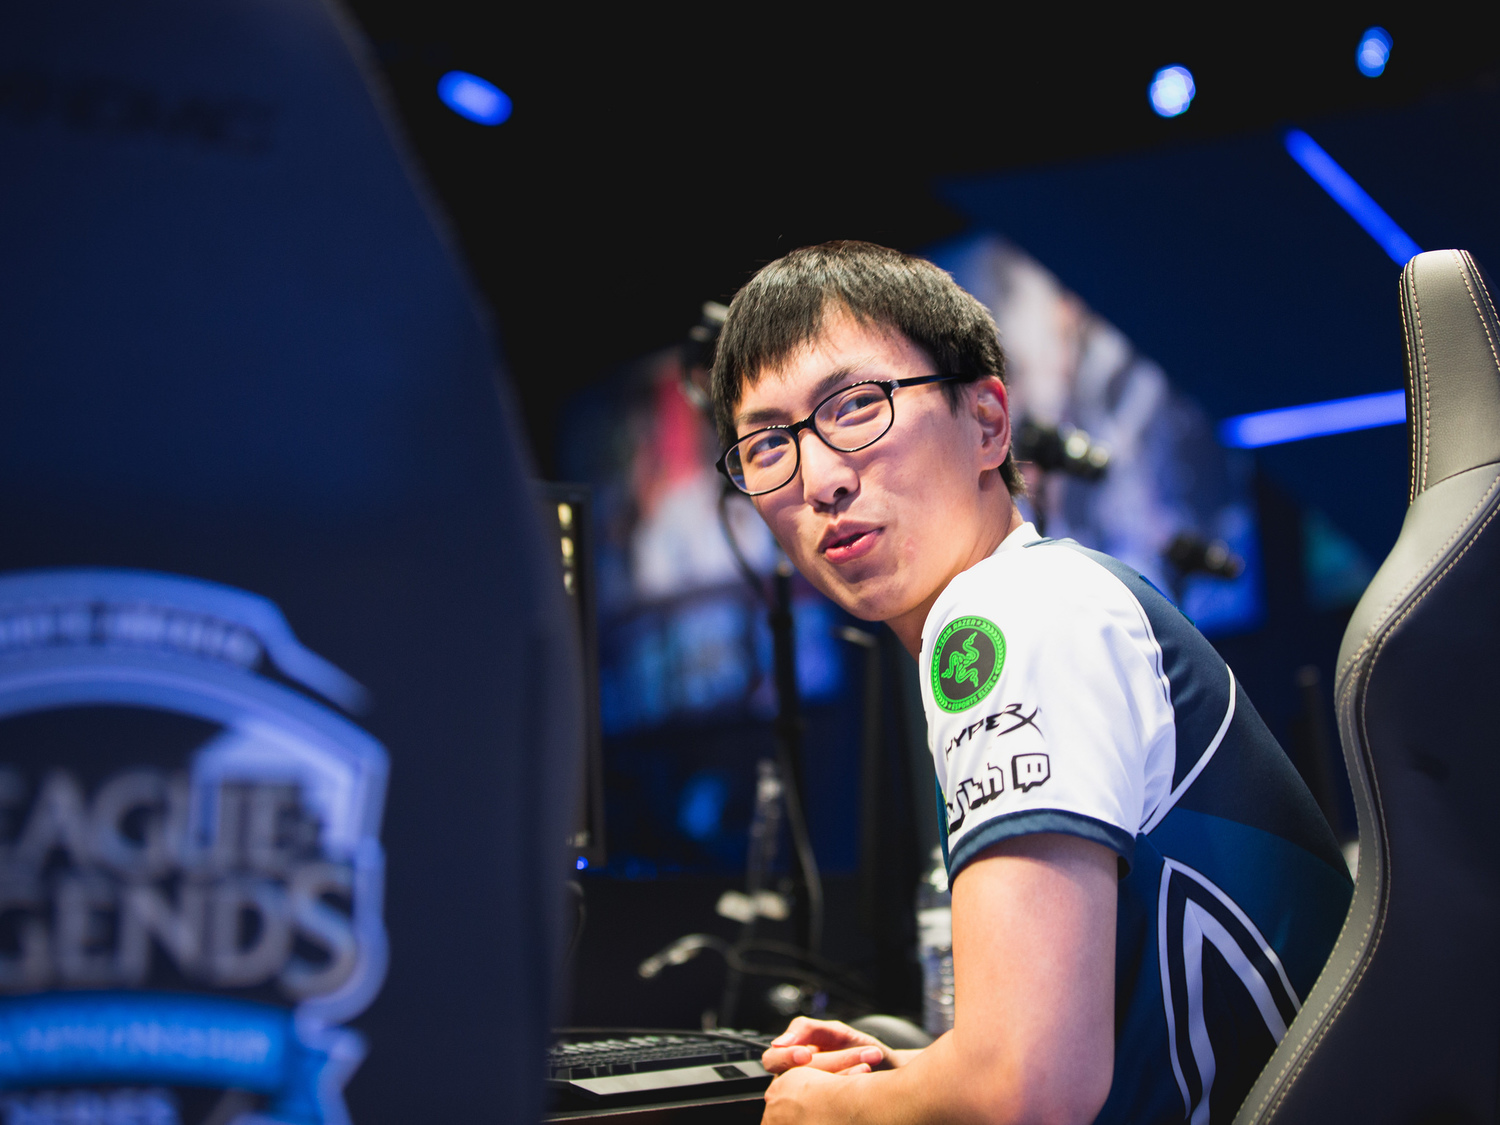 TSM AD選手Doublelift。   圖:翻攝自 LoL Esports Photos flickr